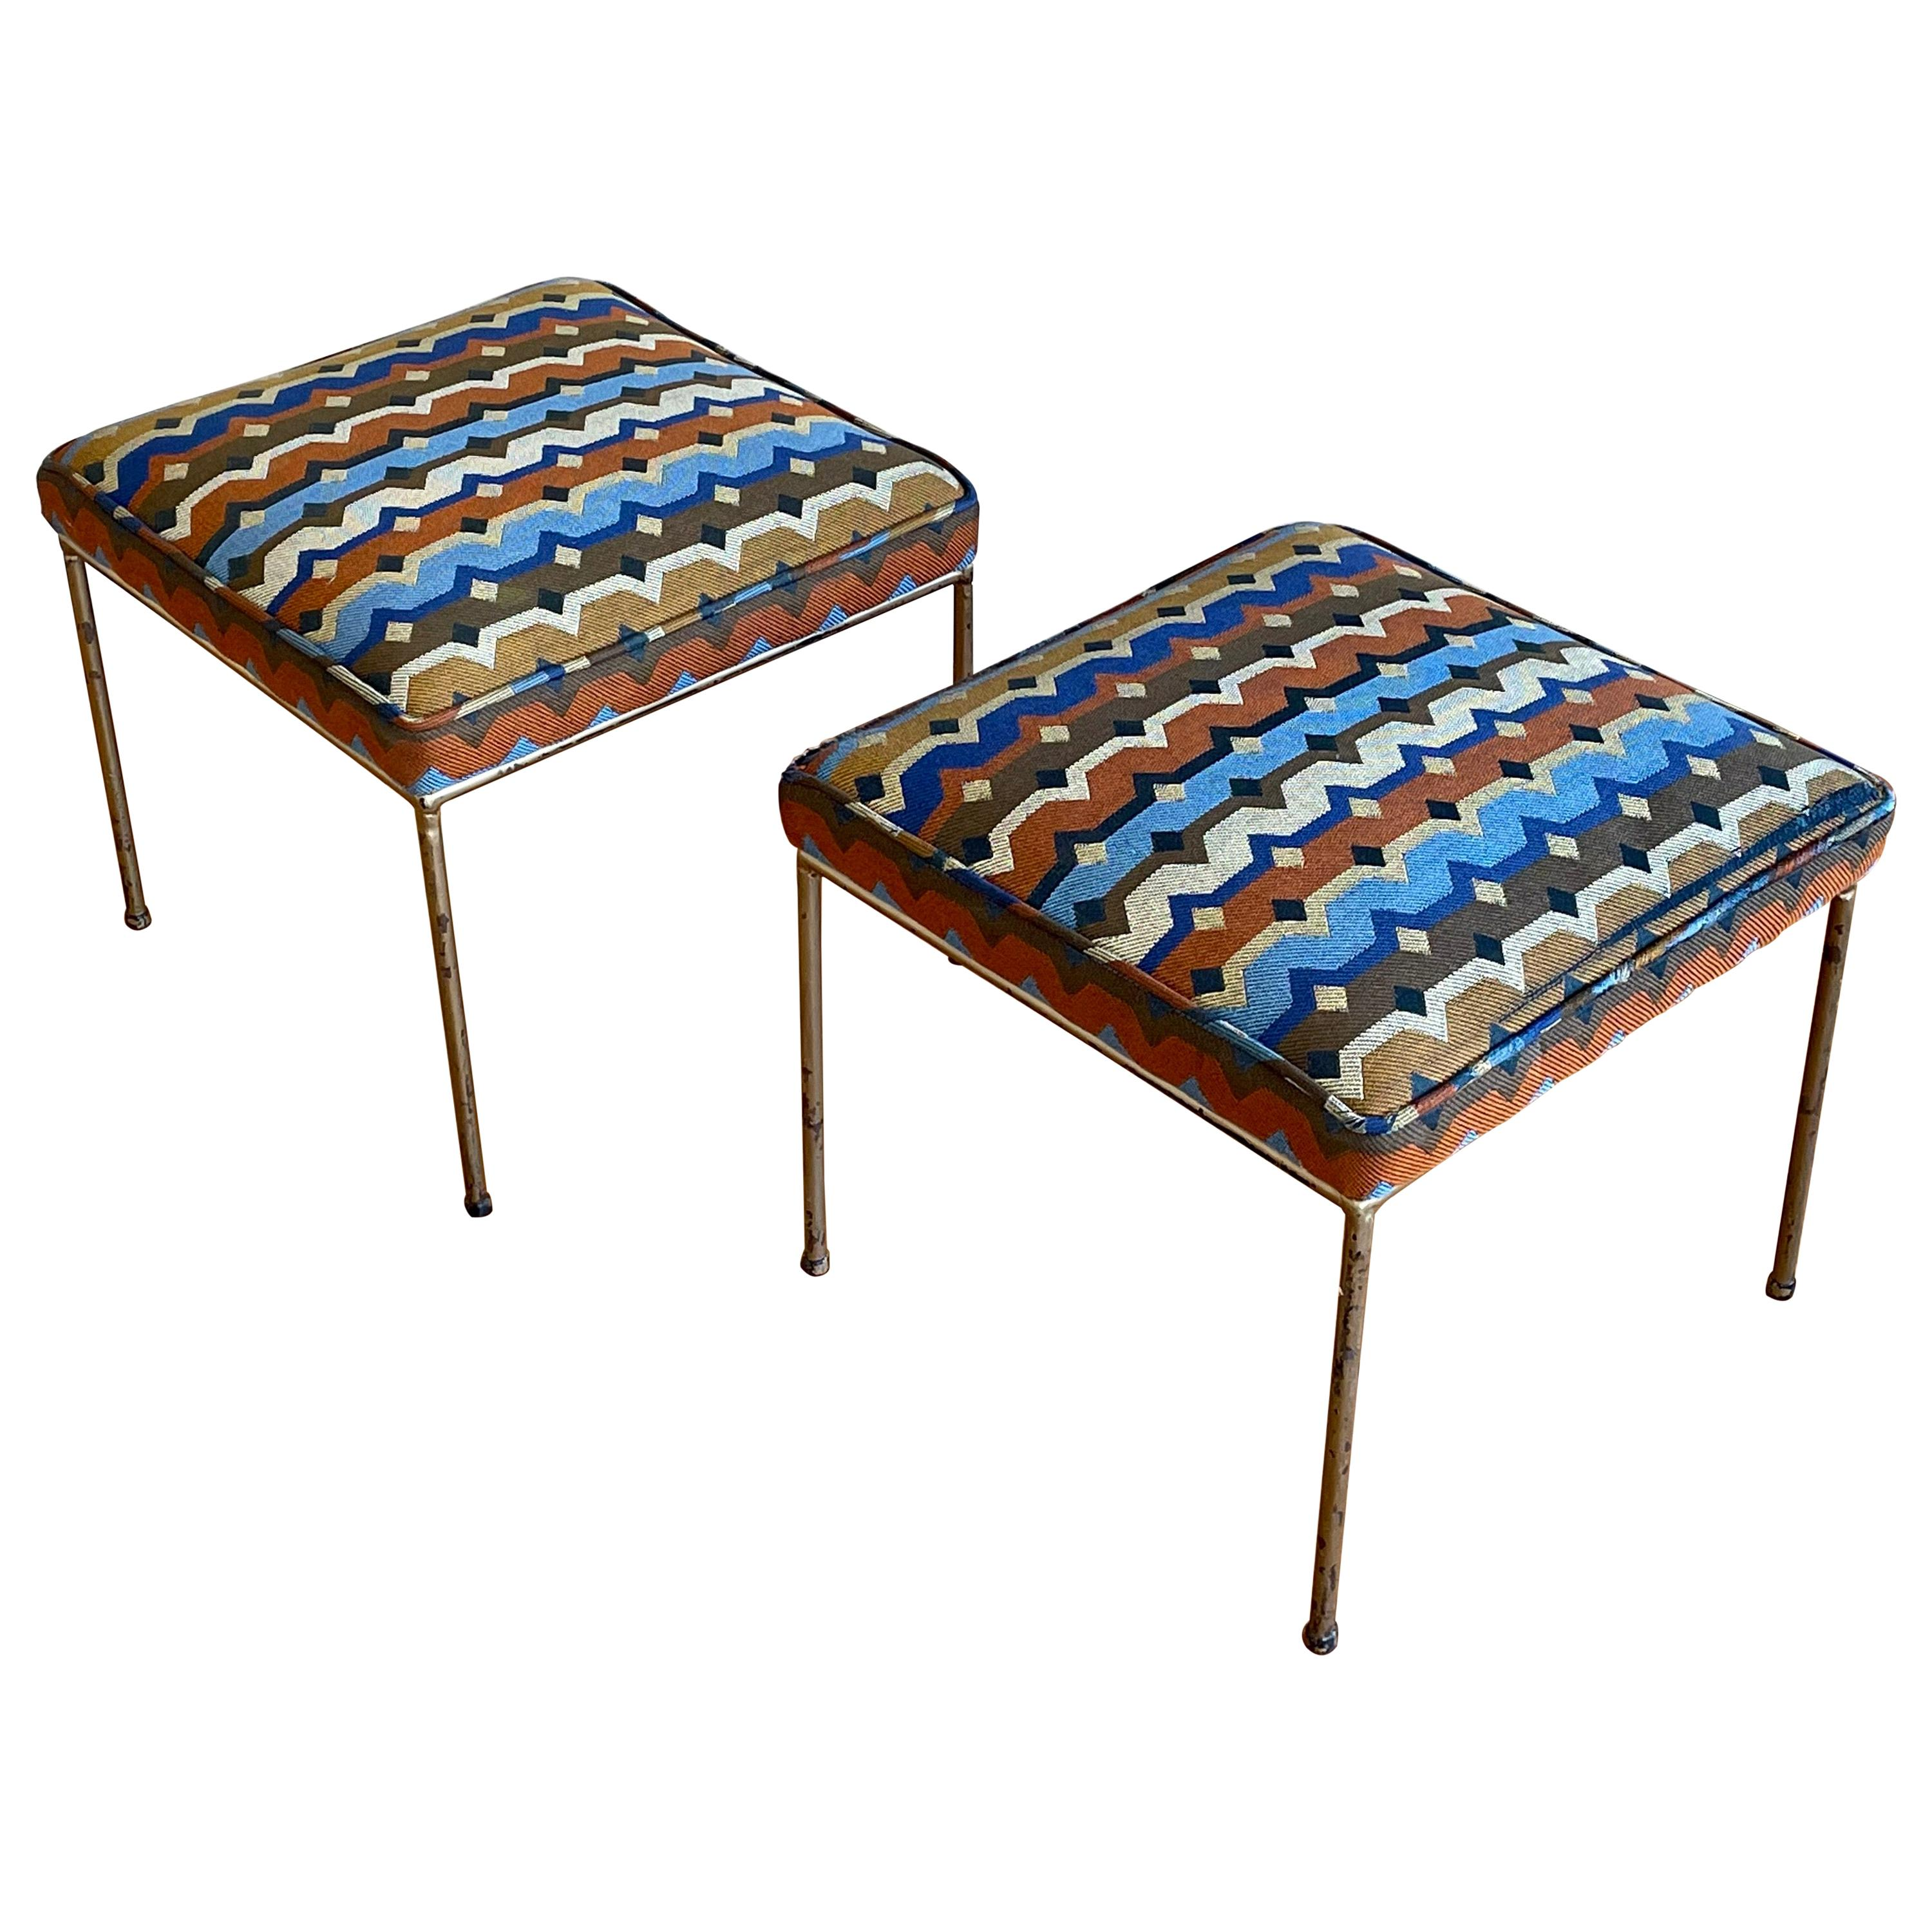 Pair of Wrought Iron Stools by Paul McCobb, US, 1950s